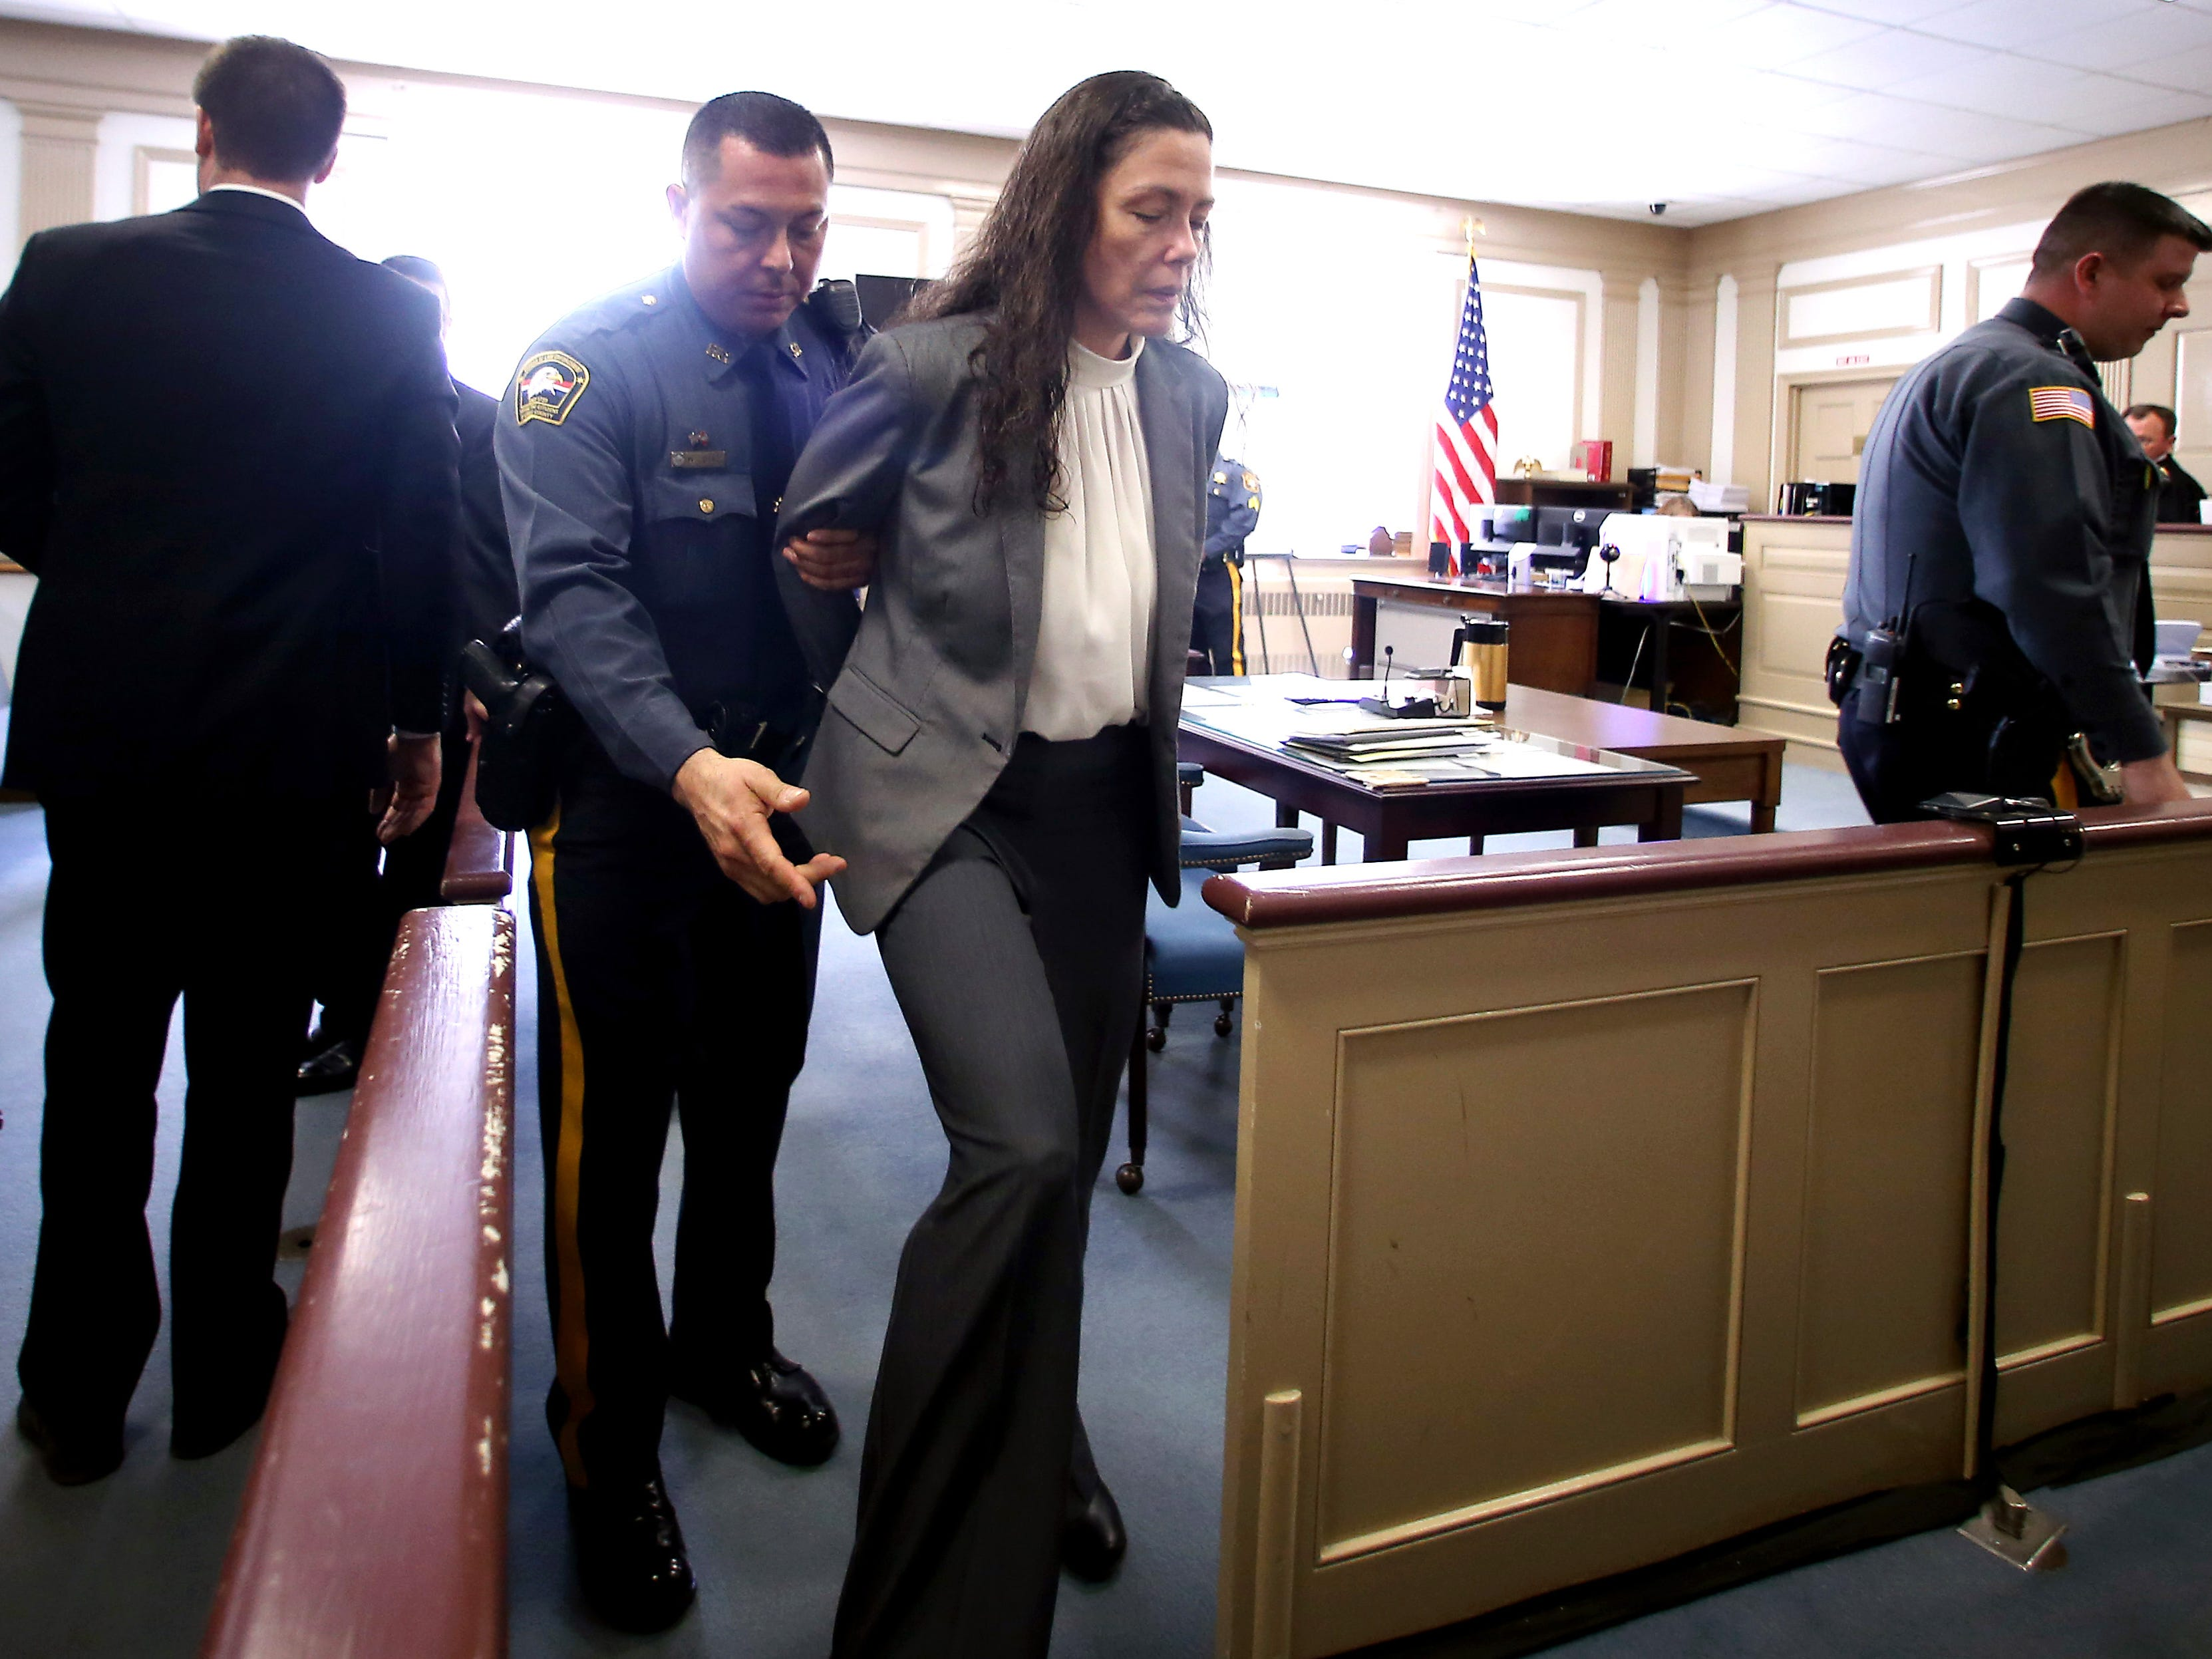 Virginia Vertetis is led from the courtroom after a jury deliberating over two days found her guilty of murder in Morris County Superior Court Monday. Prosecutors contended that Vertetis purposely shot Patrick Gilhuley at her Mount Olive home in 2014 out of desperation that he was breaking up with her. April 3, 2017, Morristown, NJ